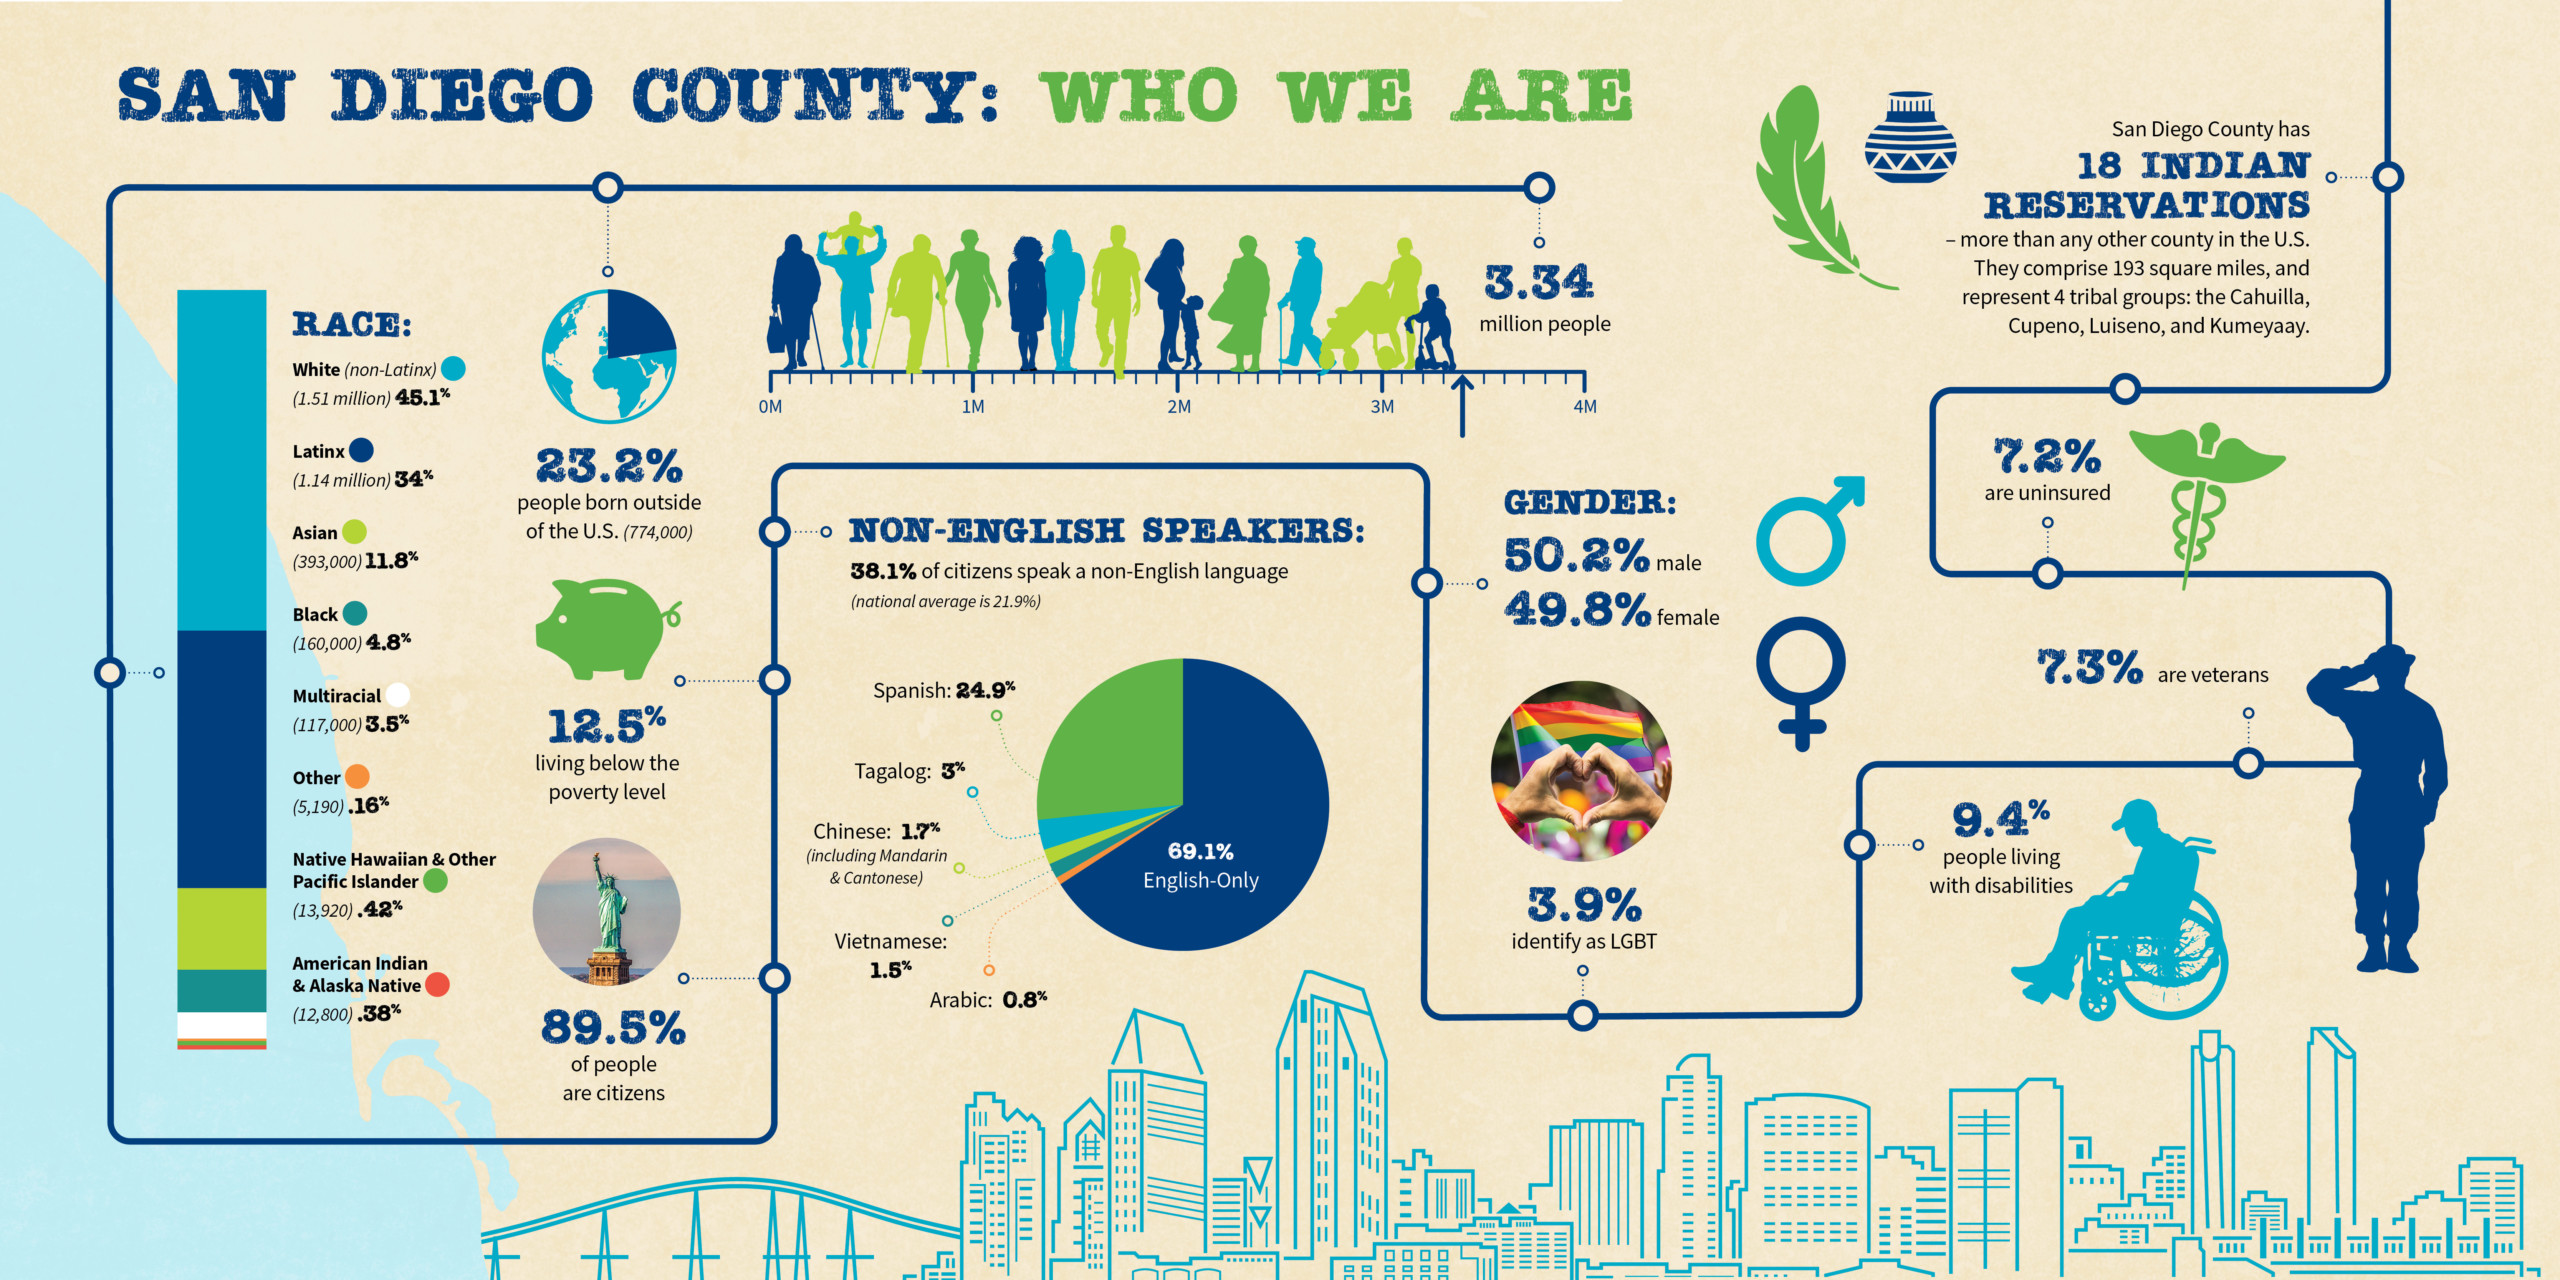 san diego county diversity infographic